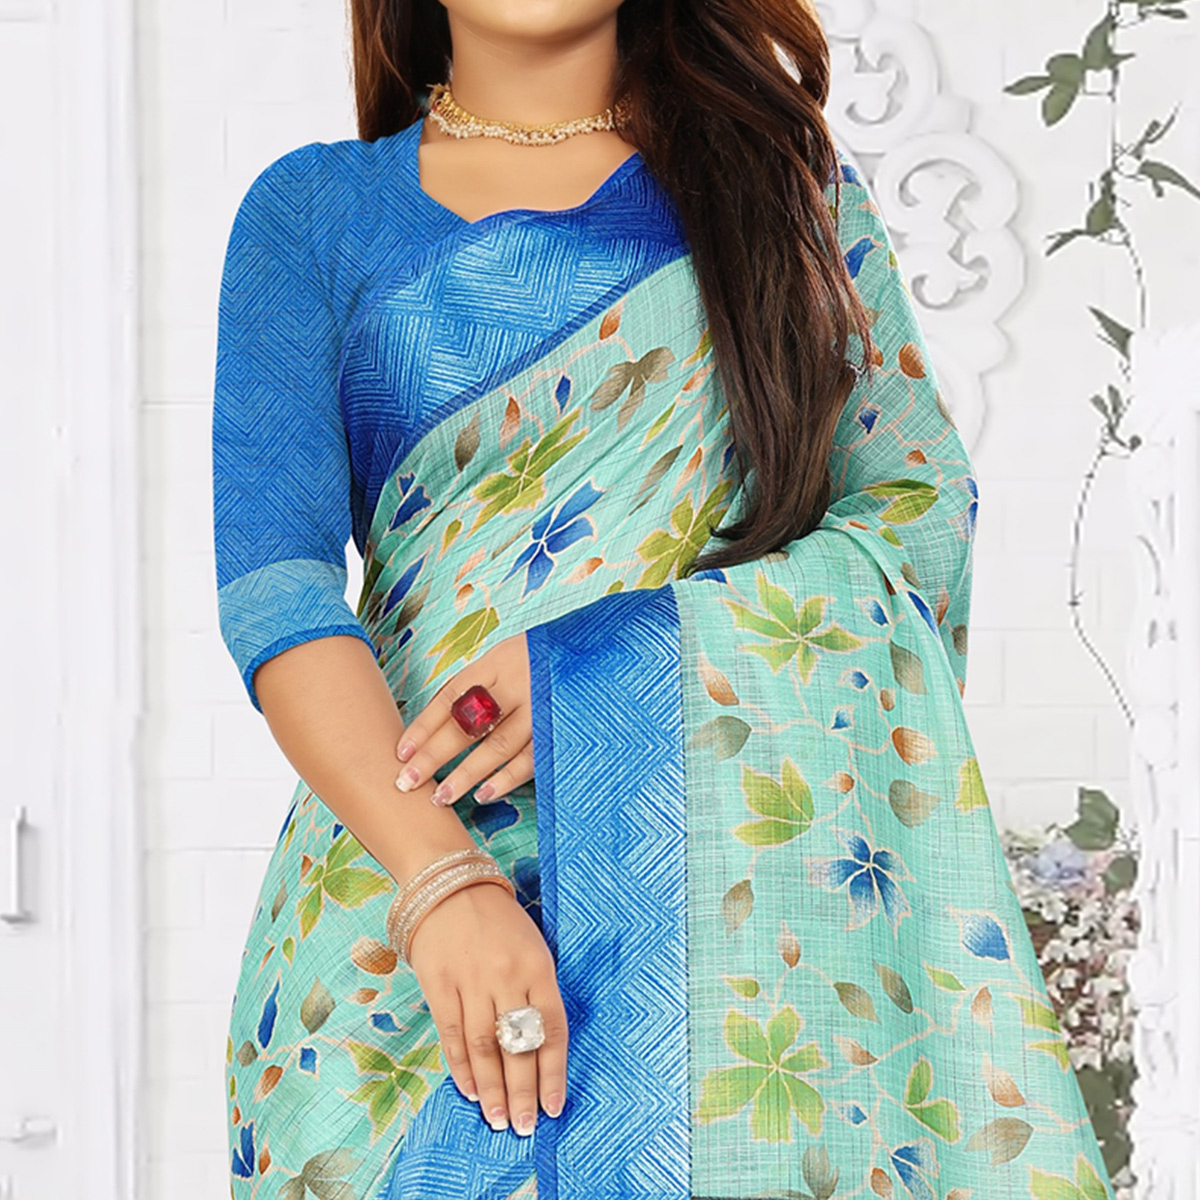 Excellent Sky Blue Colored Casual Wear Floral Printed Linen Saree With Satin Patta Border